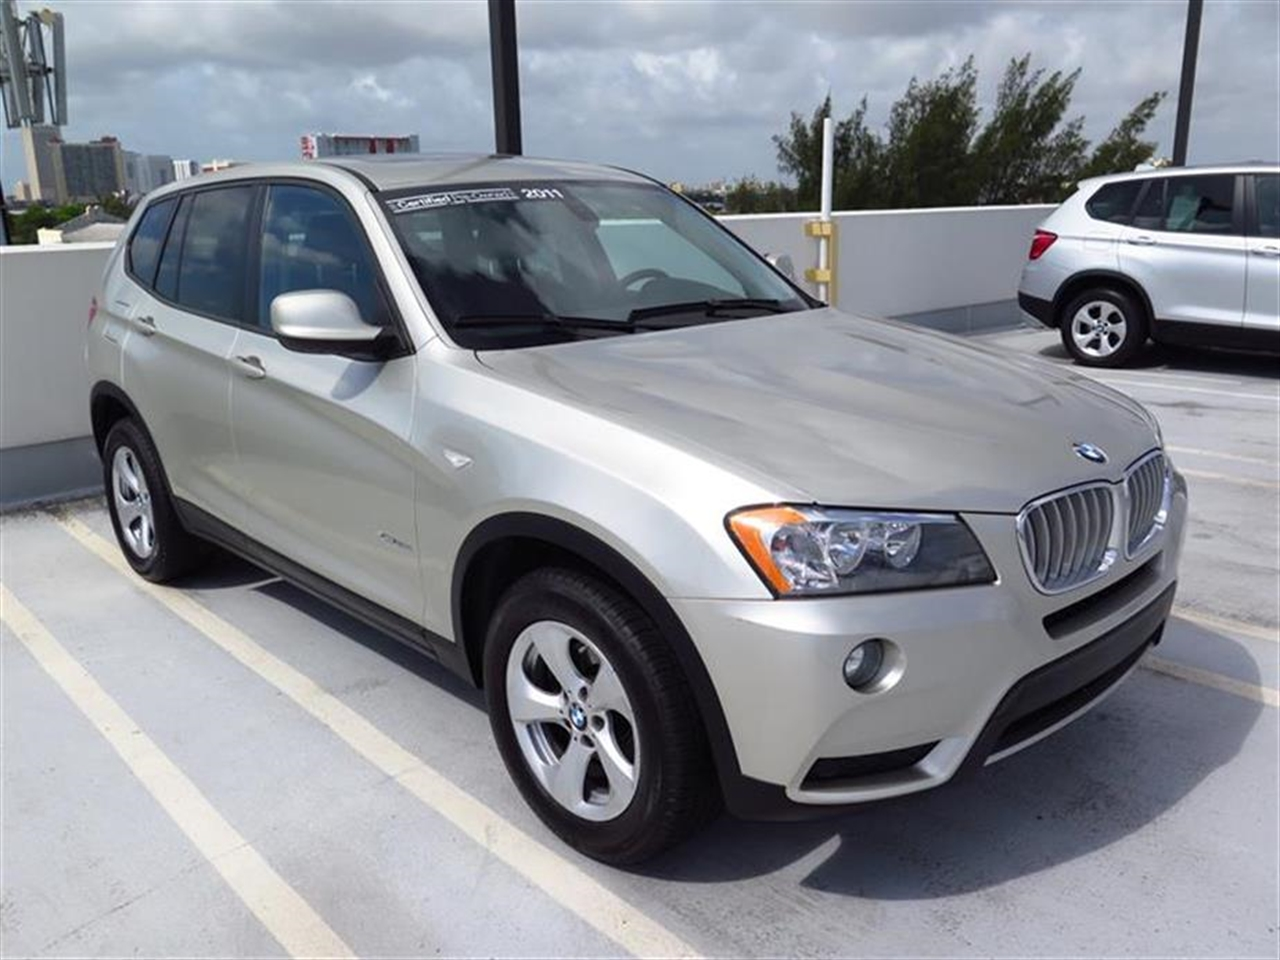 2011 BMW X3 AWD 4dr 28i 35967 miles 3-spoke leather-wrapped multi-function sport steering wheel wi